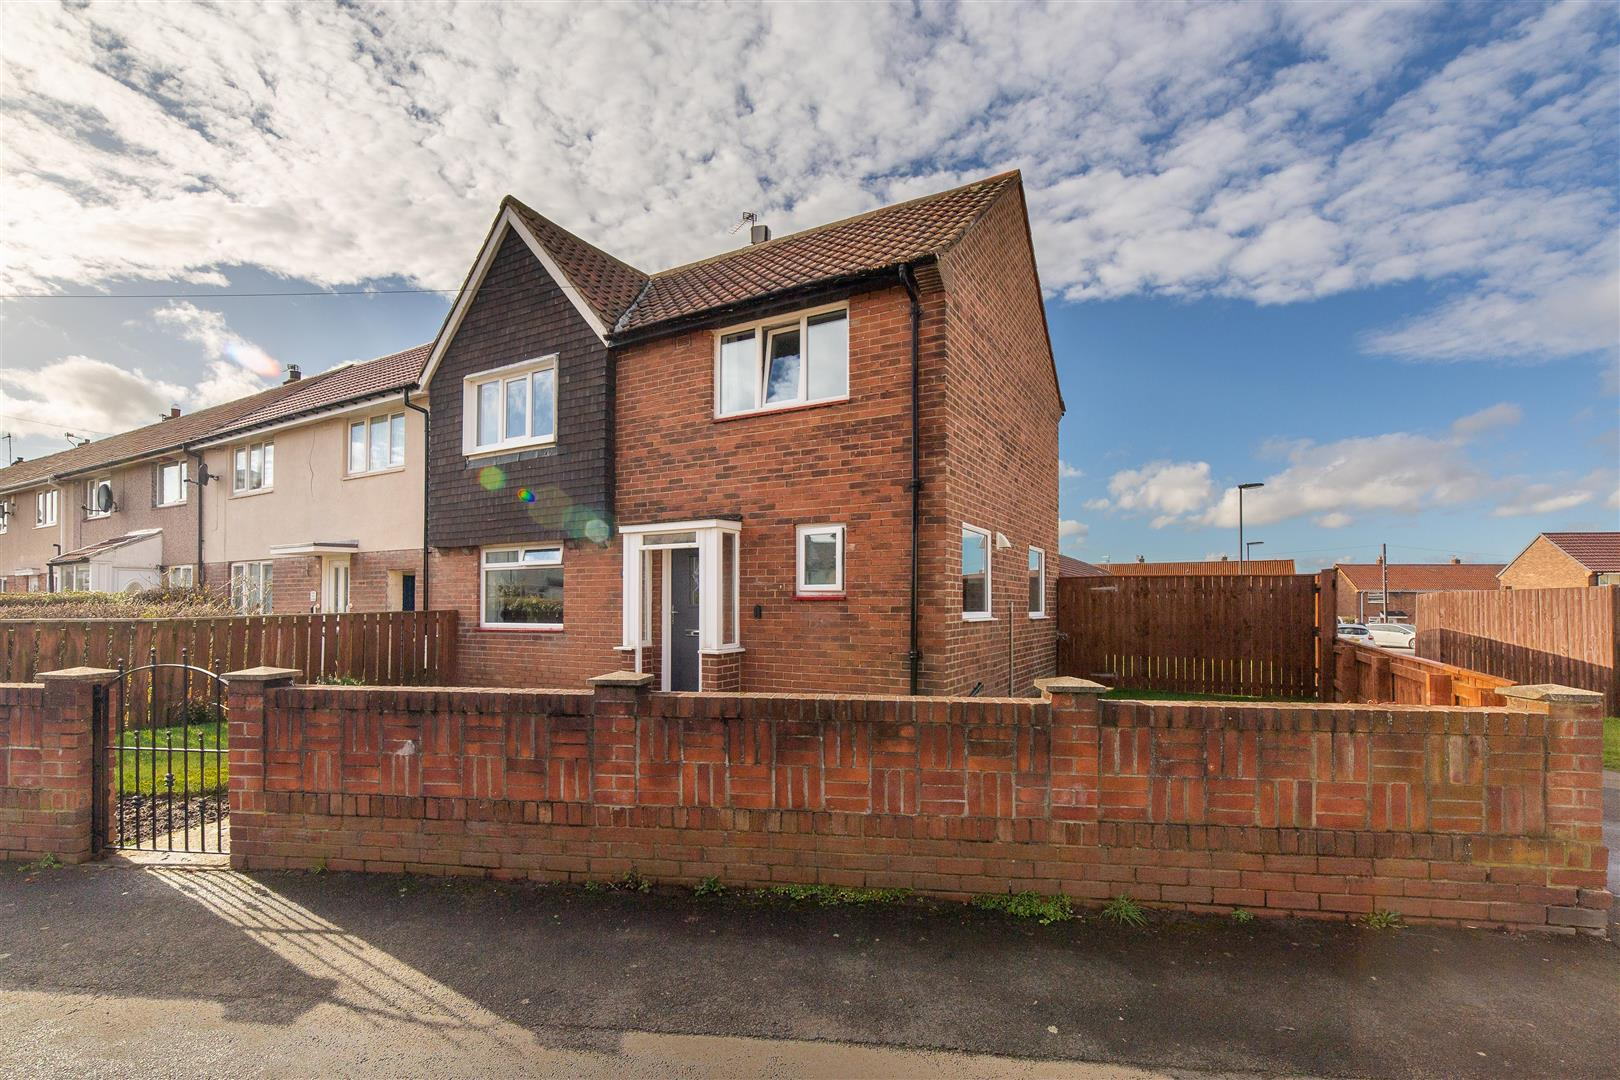 3 bed semi-detached house for sale in Bardsey Place, Longbenton, NE12